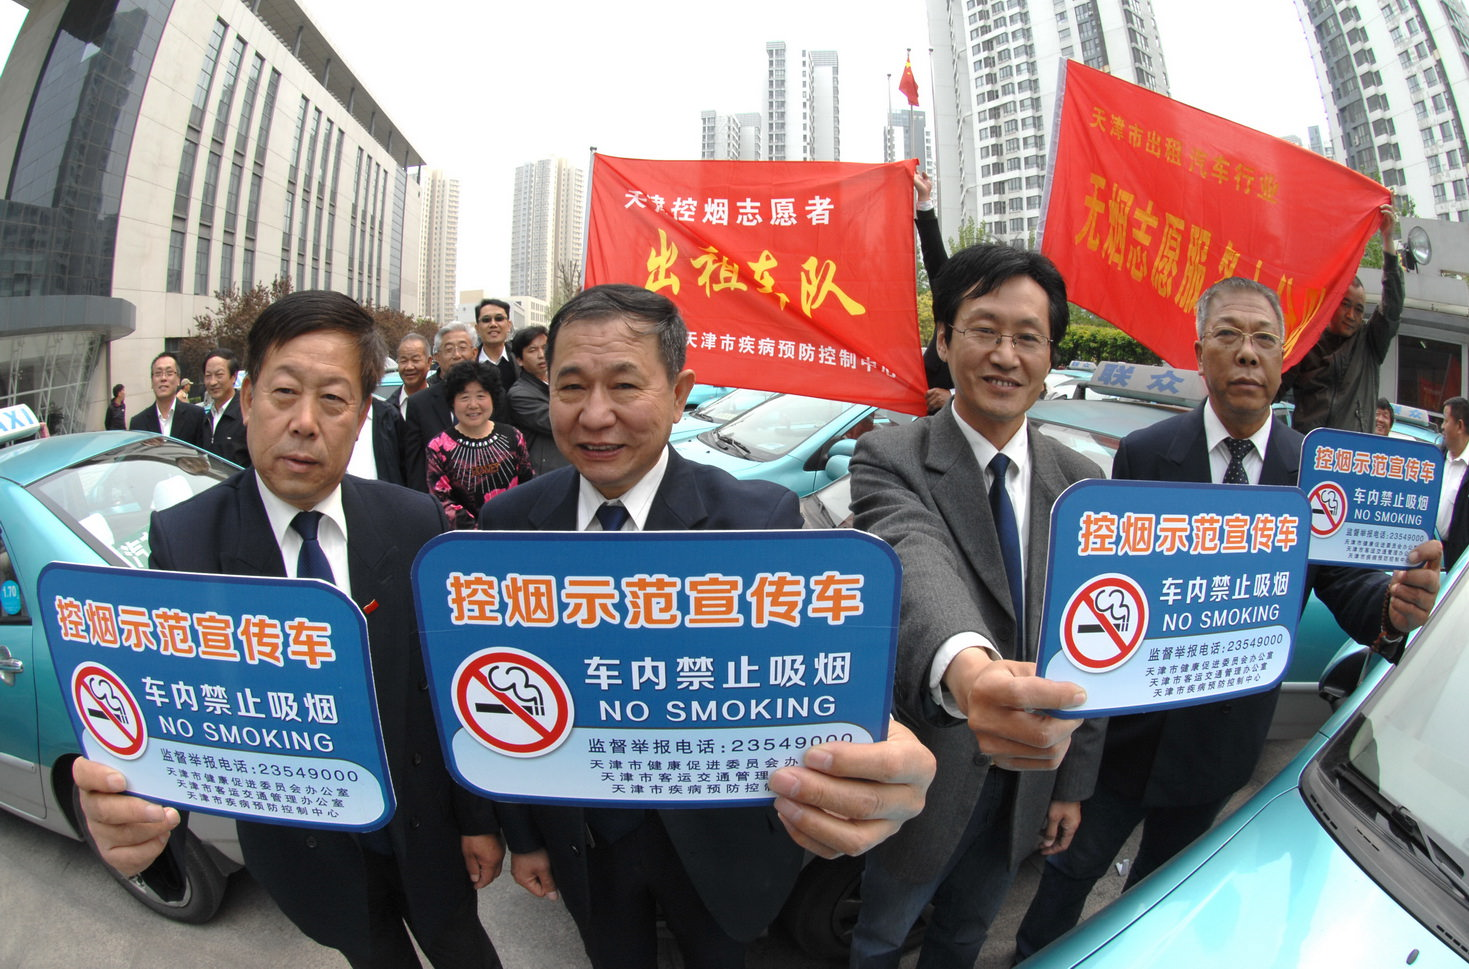 PublicHealth_Tobacco_4_China Smoke Free Taxis